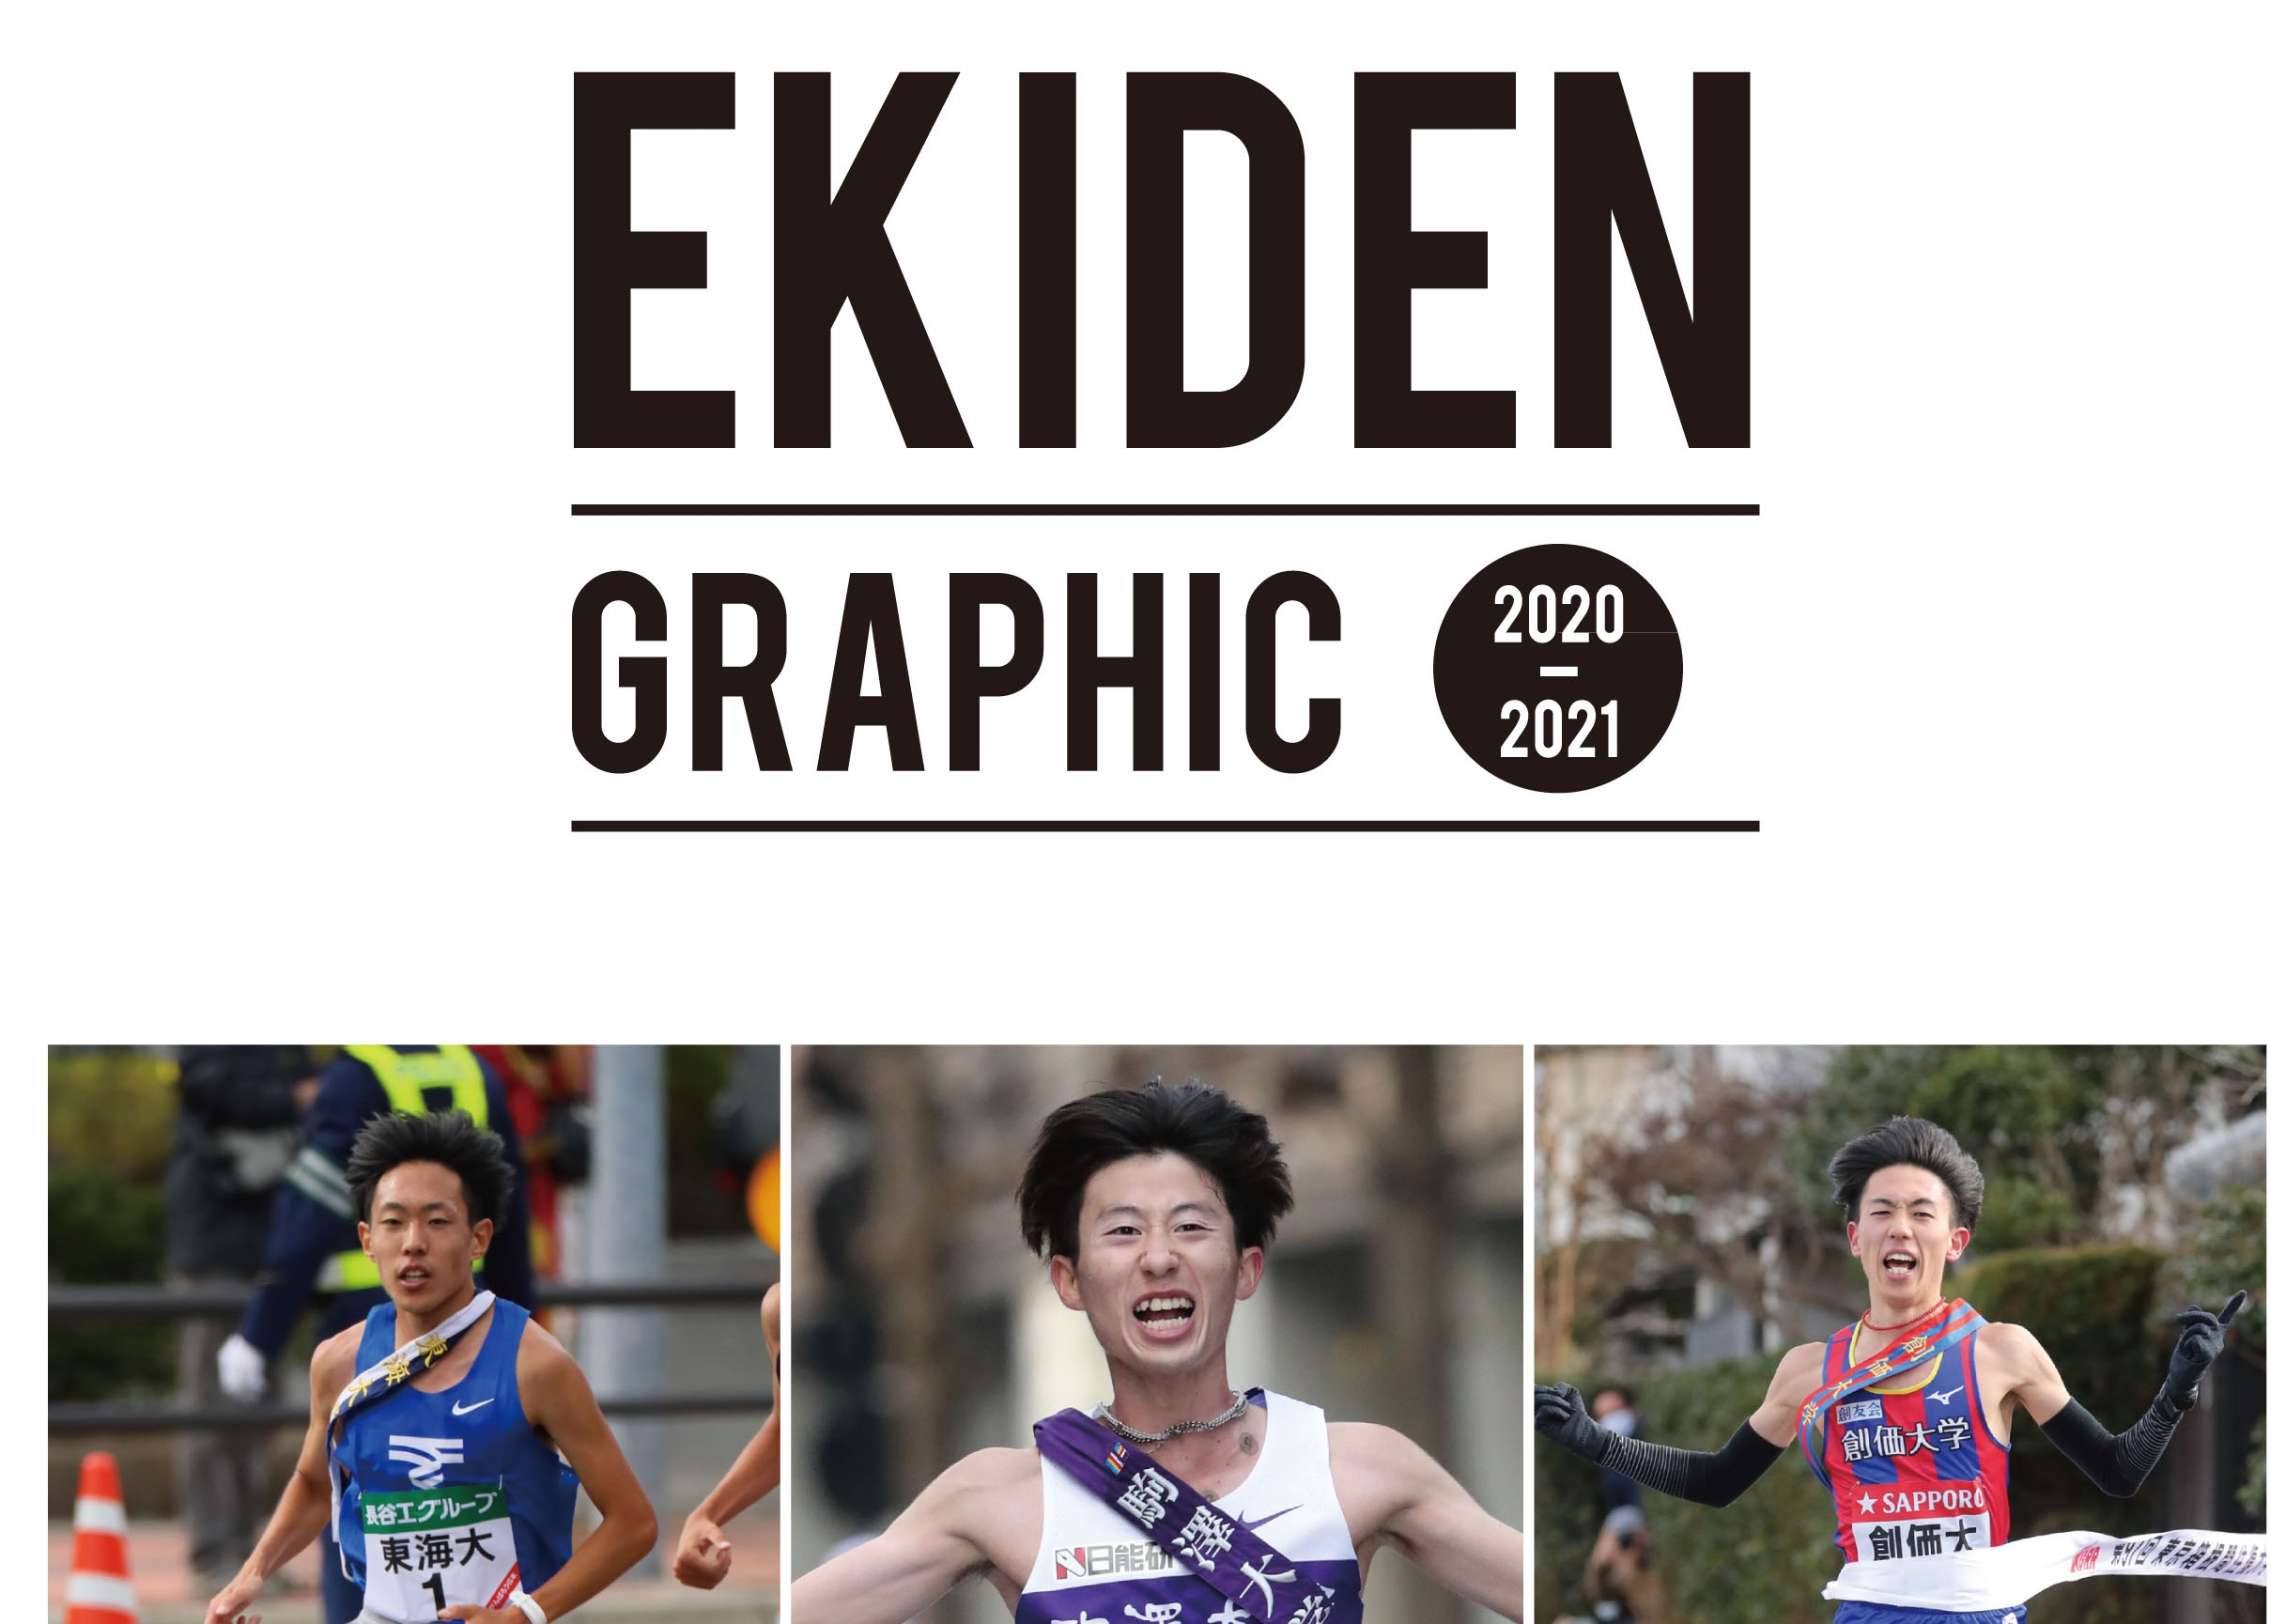 EKIDEN GRAPHIC 2020-2021